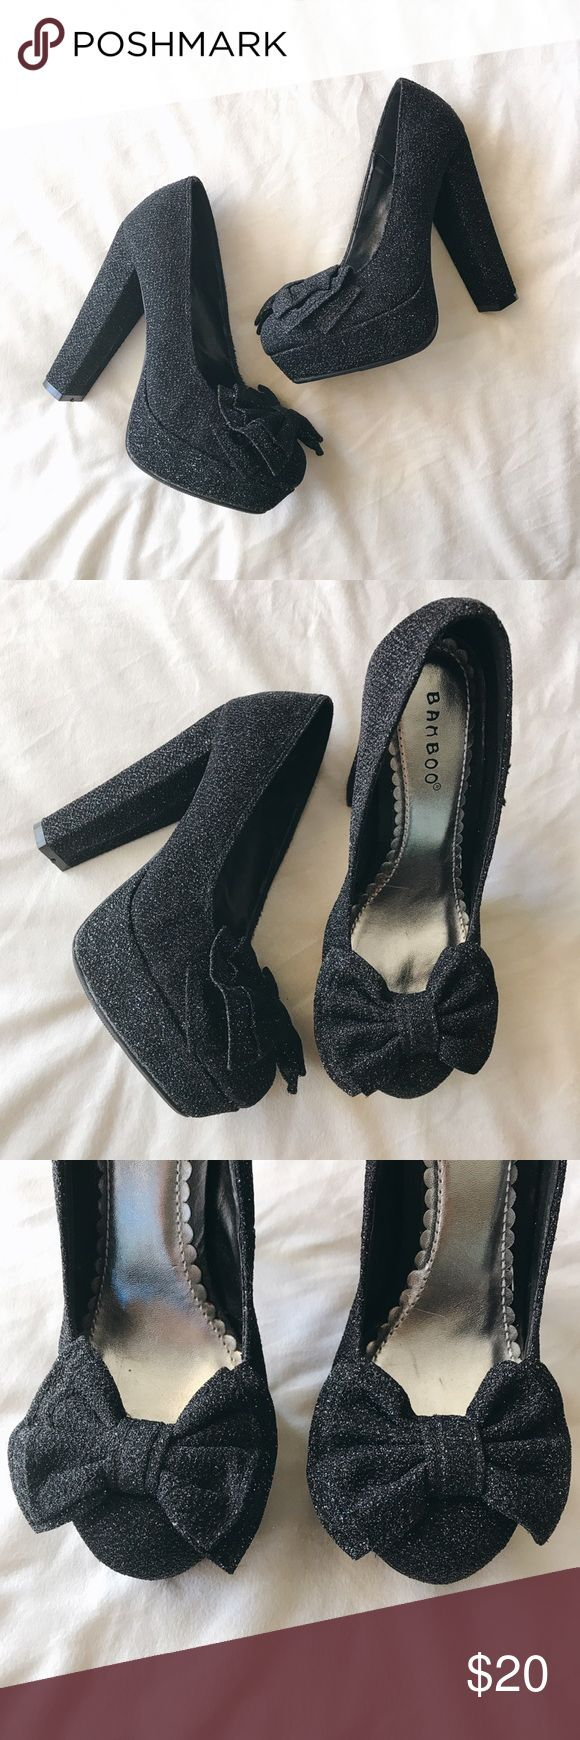 "🎉24 Hour FLASH SALE - Sparkle + Bow Heels Adorable black sparkly heels featuring bows and a block heel! Heel 5"". Never worn. Too small for me. Ships next day. Shoes Heels"